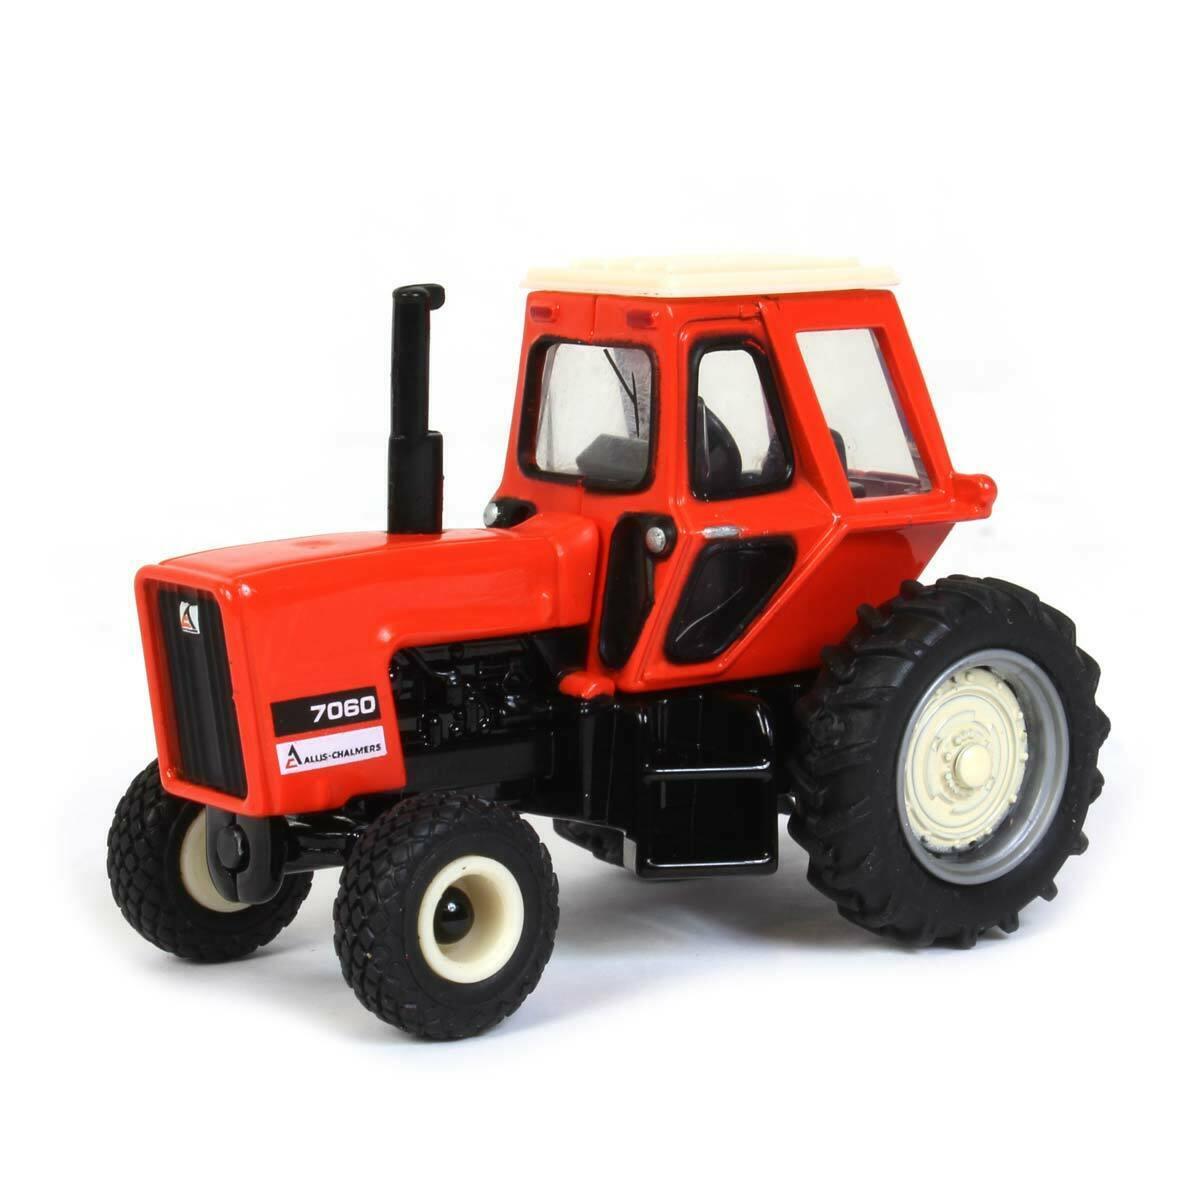 1/64 ERTL AGCO ALLIS-CHALMERS 7060 TRACTOR